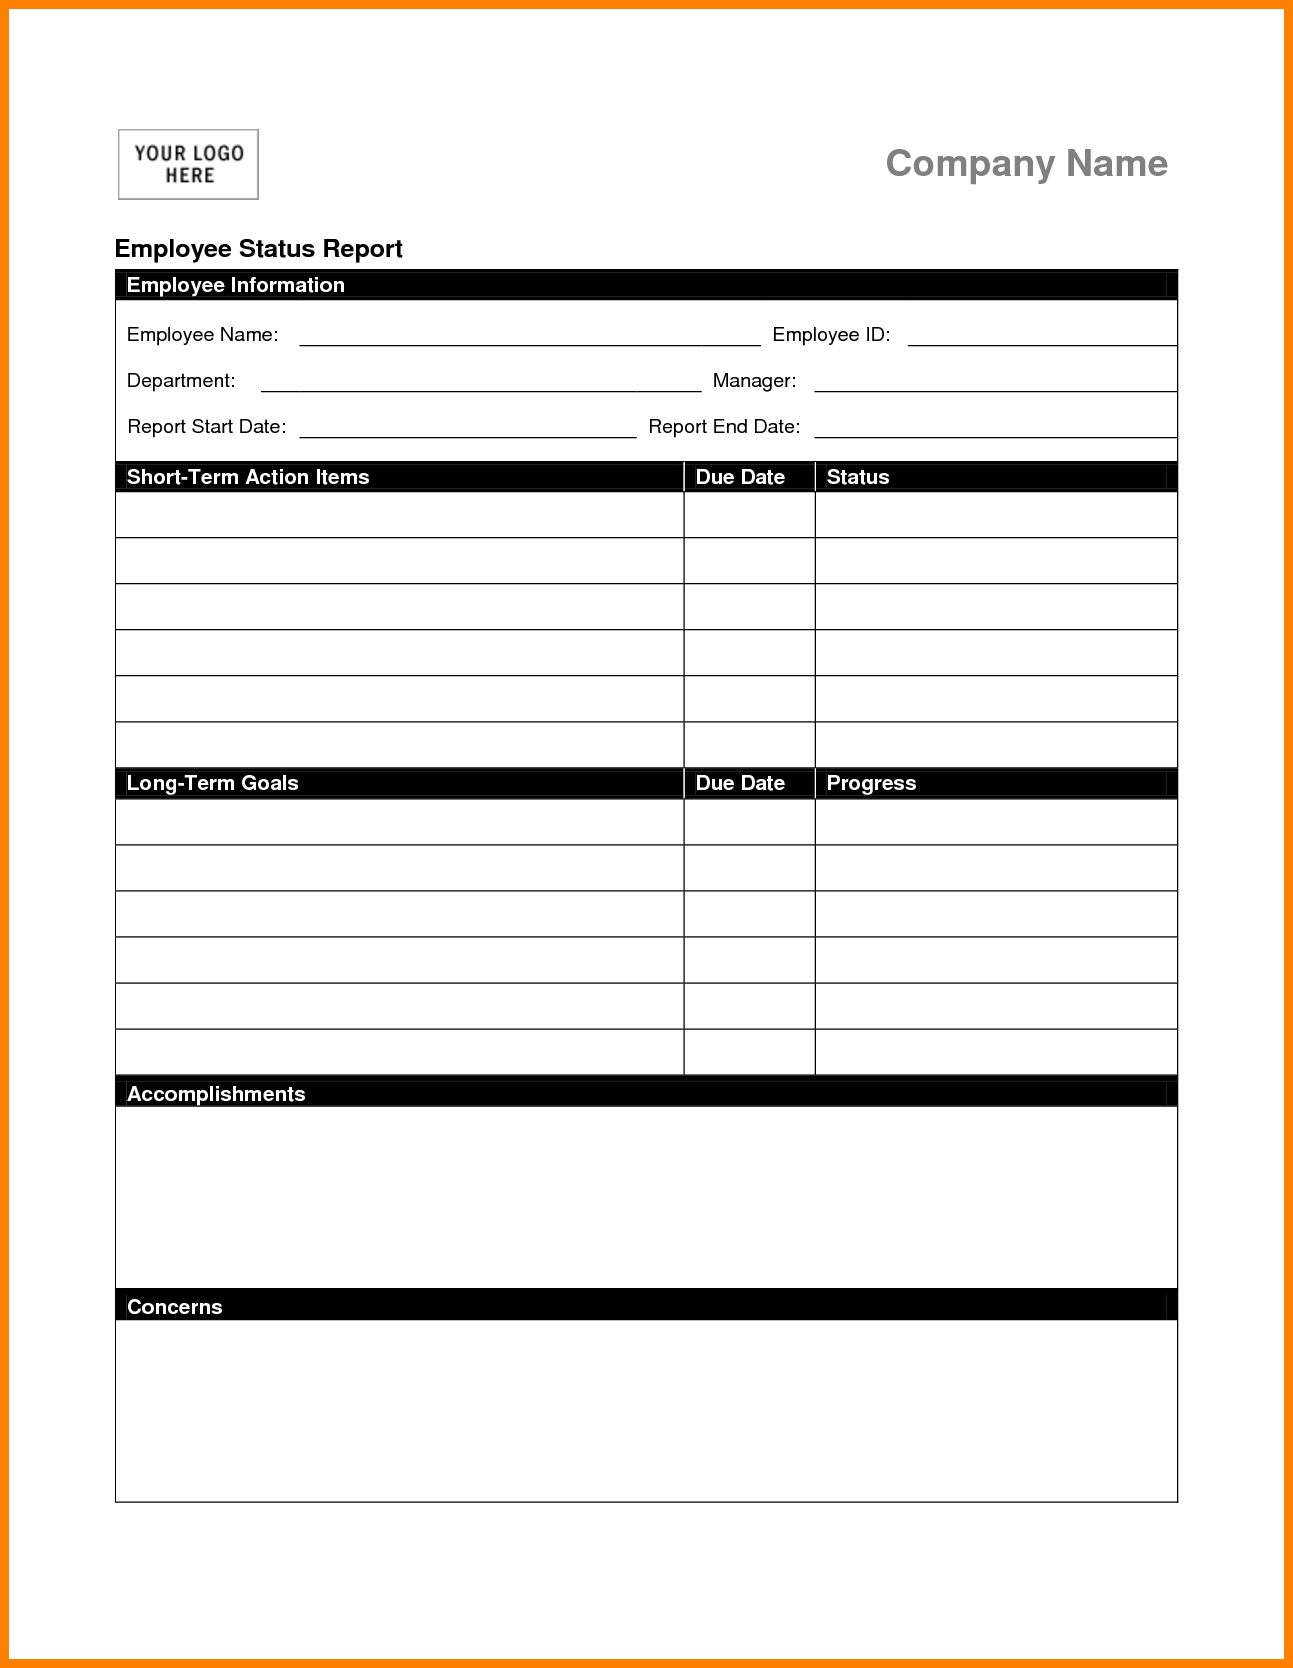 Weekly Status Report Sample Building Construction Progress Throughout Project Weekly Status Repo Project Status Report Report Template Progress Report Template Employee weekly status report template